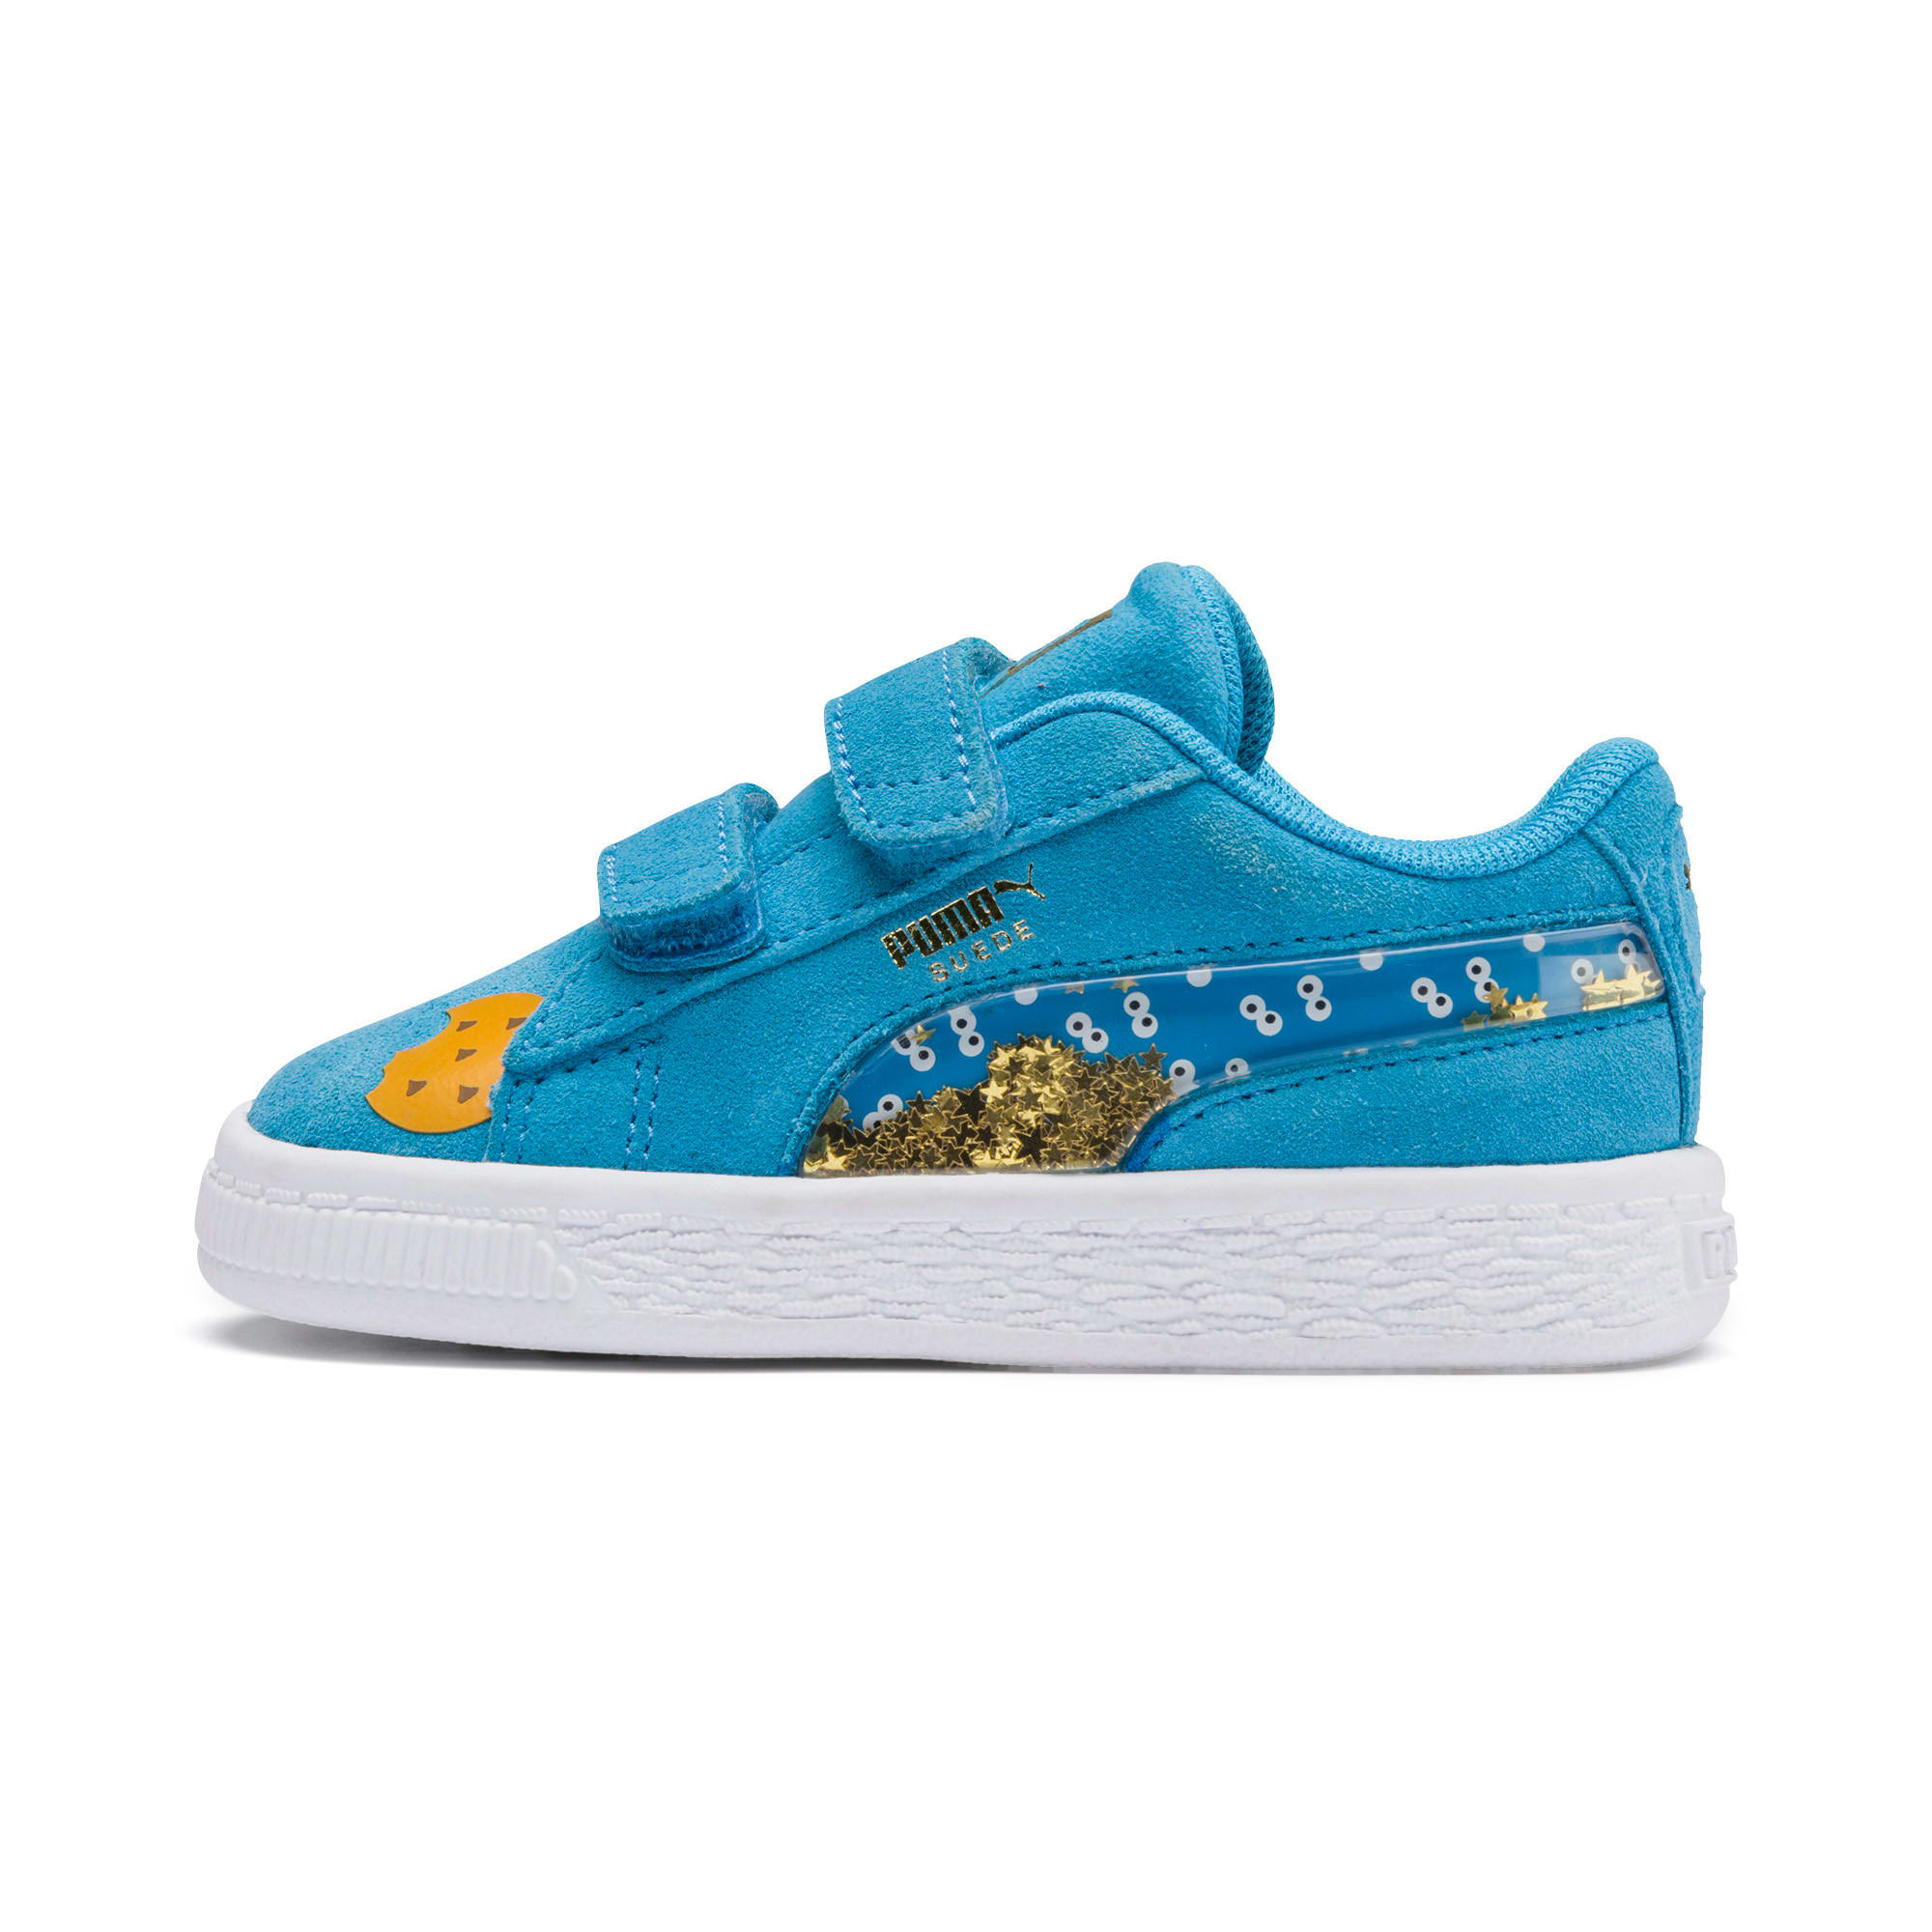 Thumbnail 1 of Sesame Street 50 Suede Statement Babies' Trainers, Bleu Azur-Puma White, medium